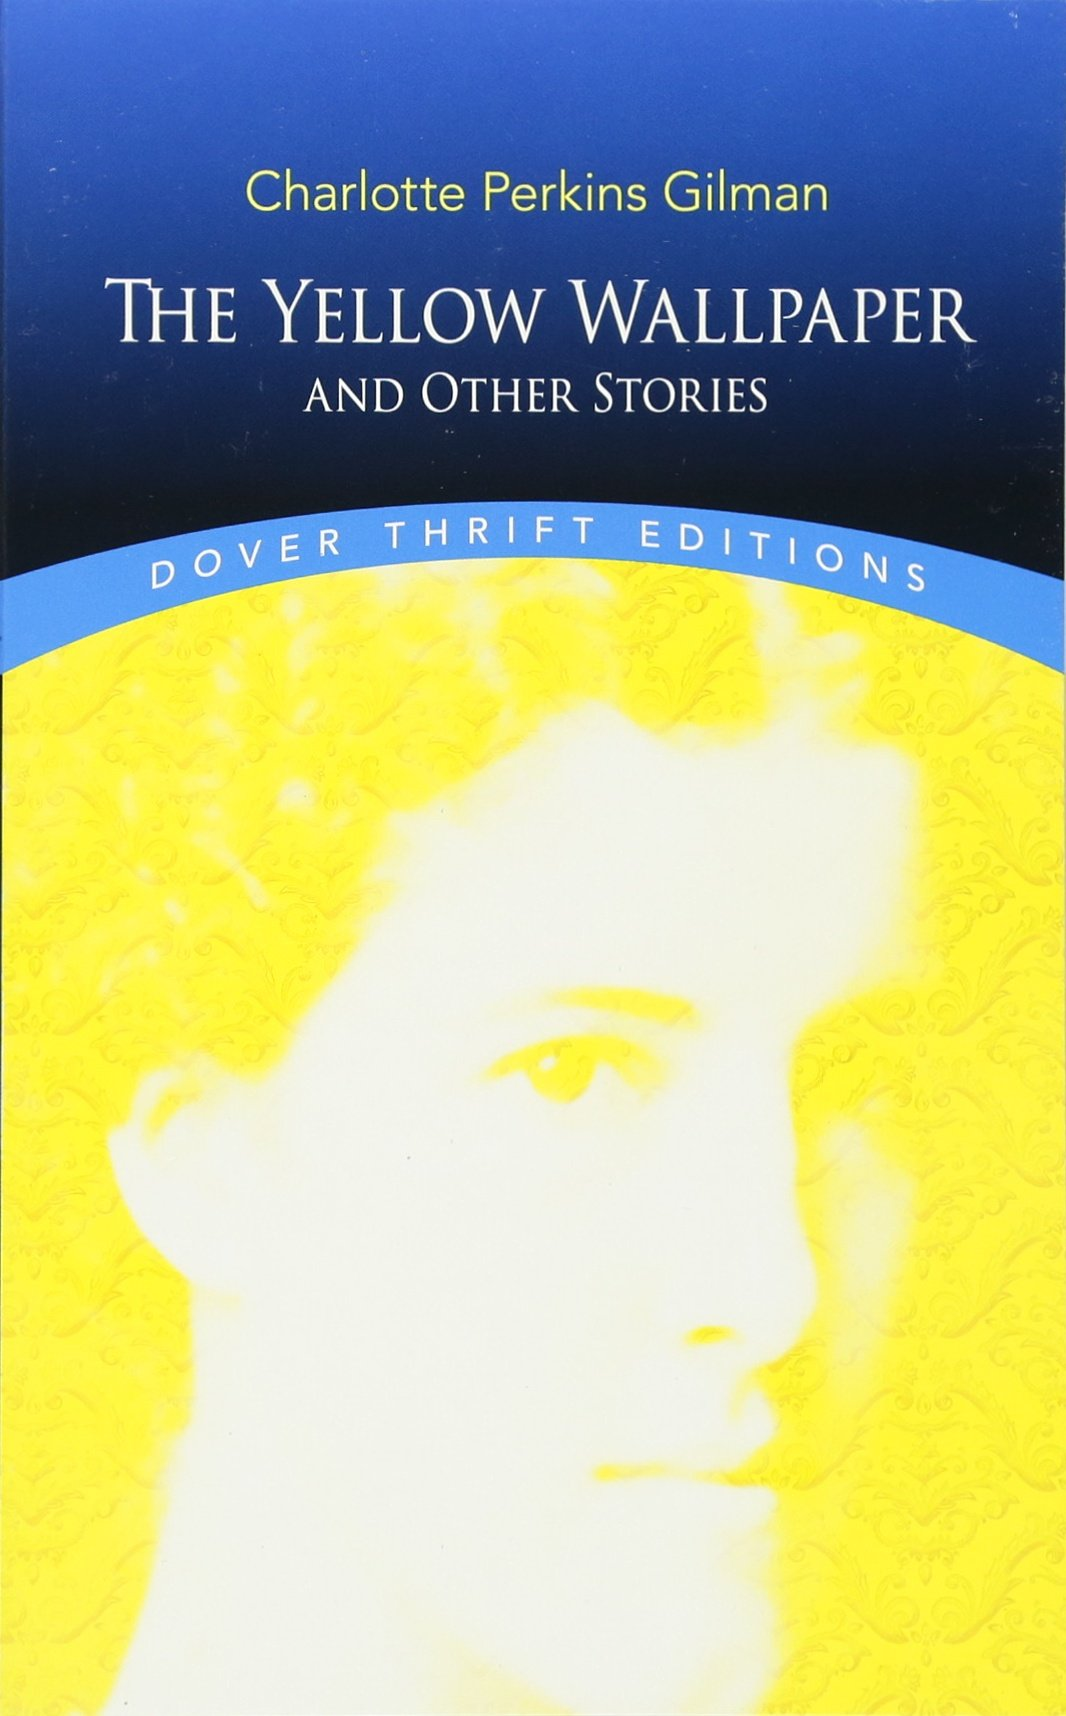 The Yellow Wallpaper And Other Stories Charlotte Perkins Gilman 0800759298570 Literature Amazon Canada